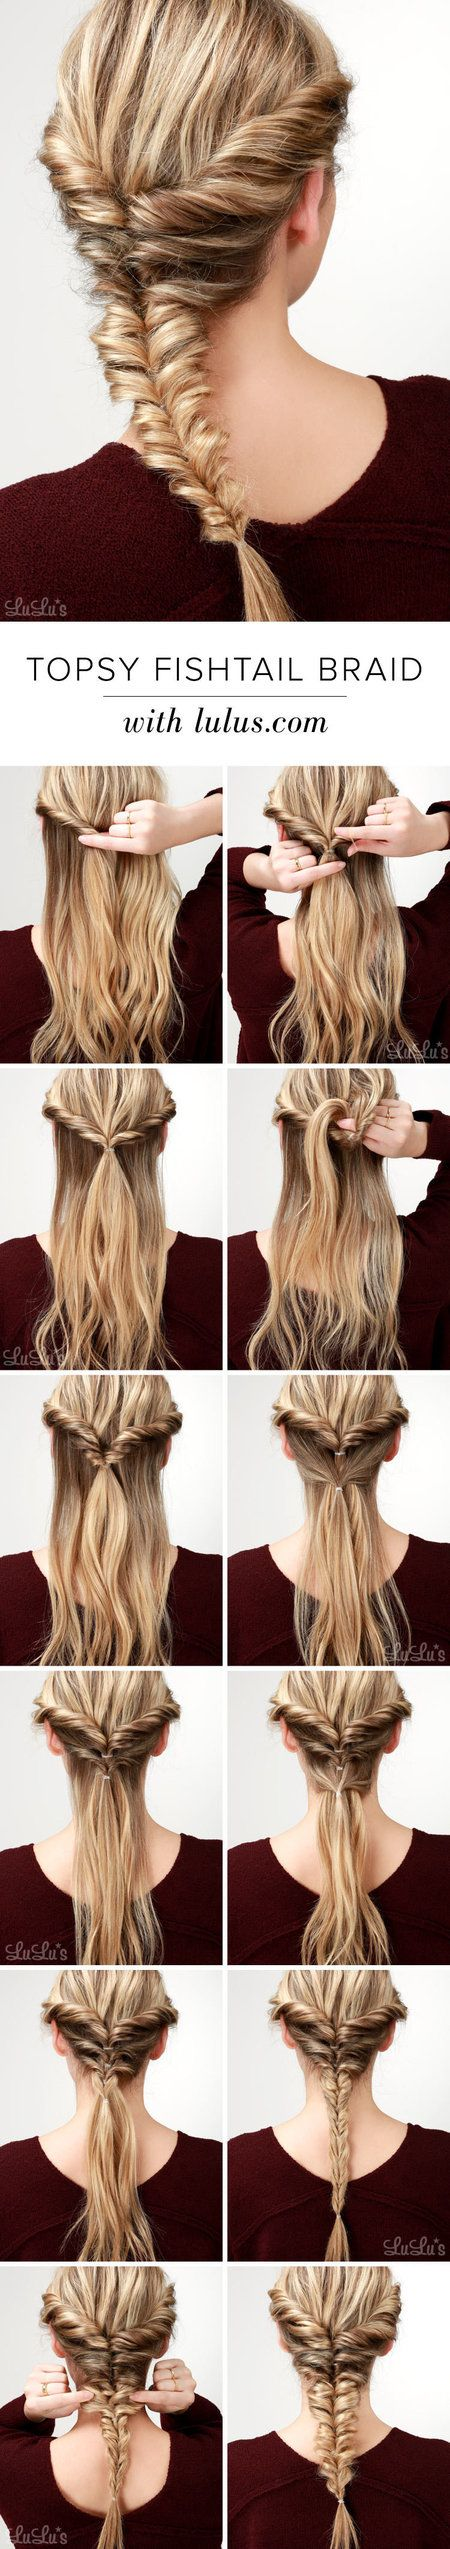 How-To: Topsy Fishtail Braid Tutorial - Georgina Waltz